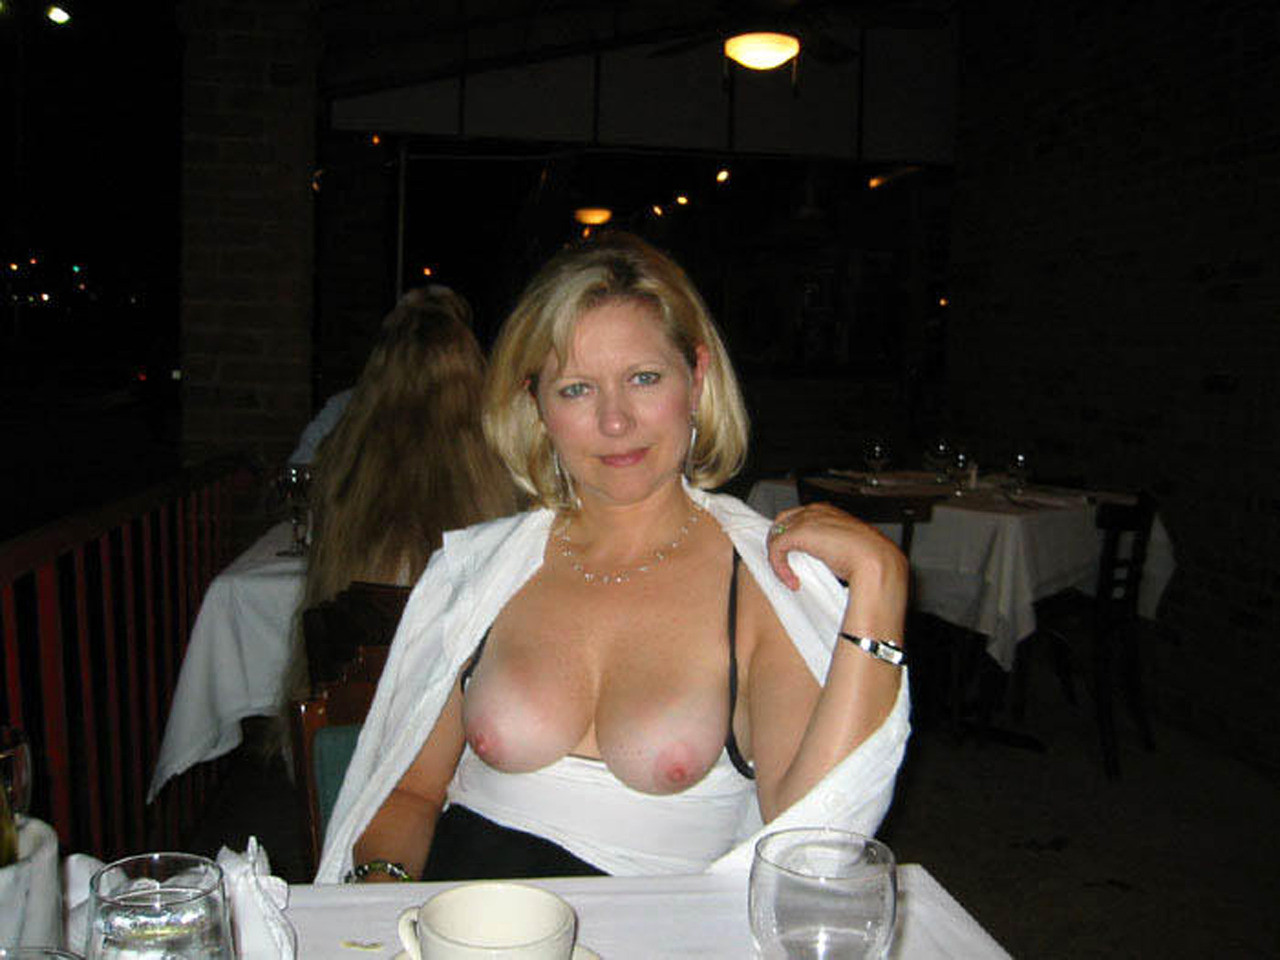 Flashing Milf Com